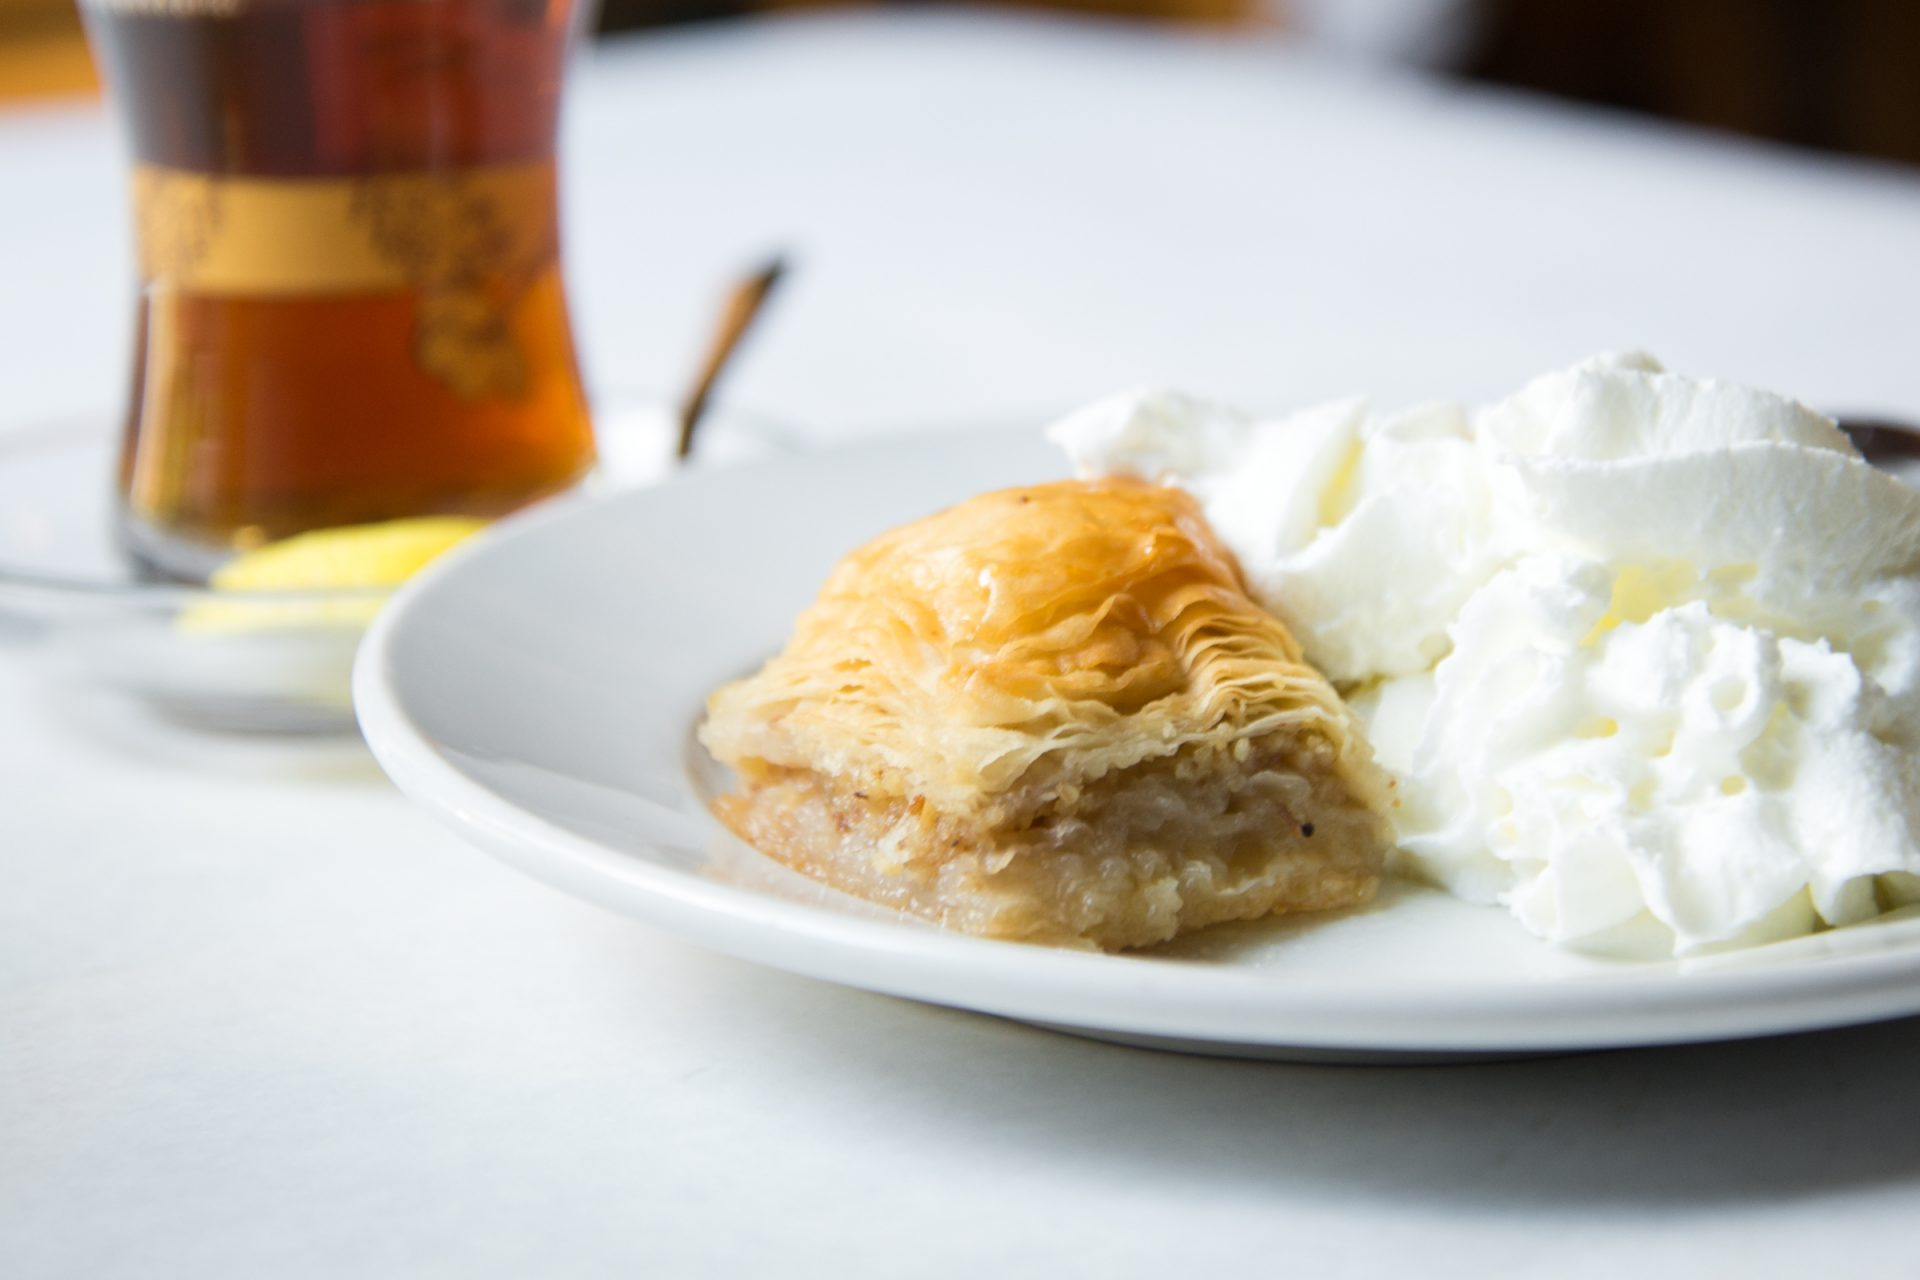 Homemade Baklava with a drizzle of honey and whipped cream, perfect with a glass of Turkish tea.